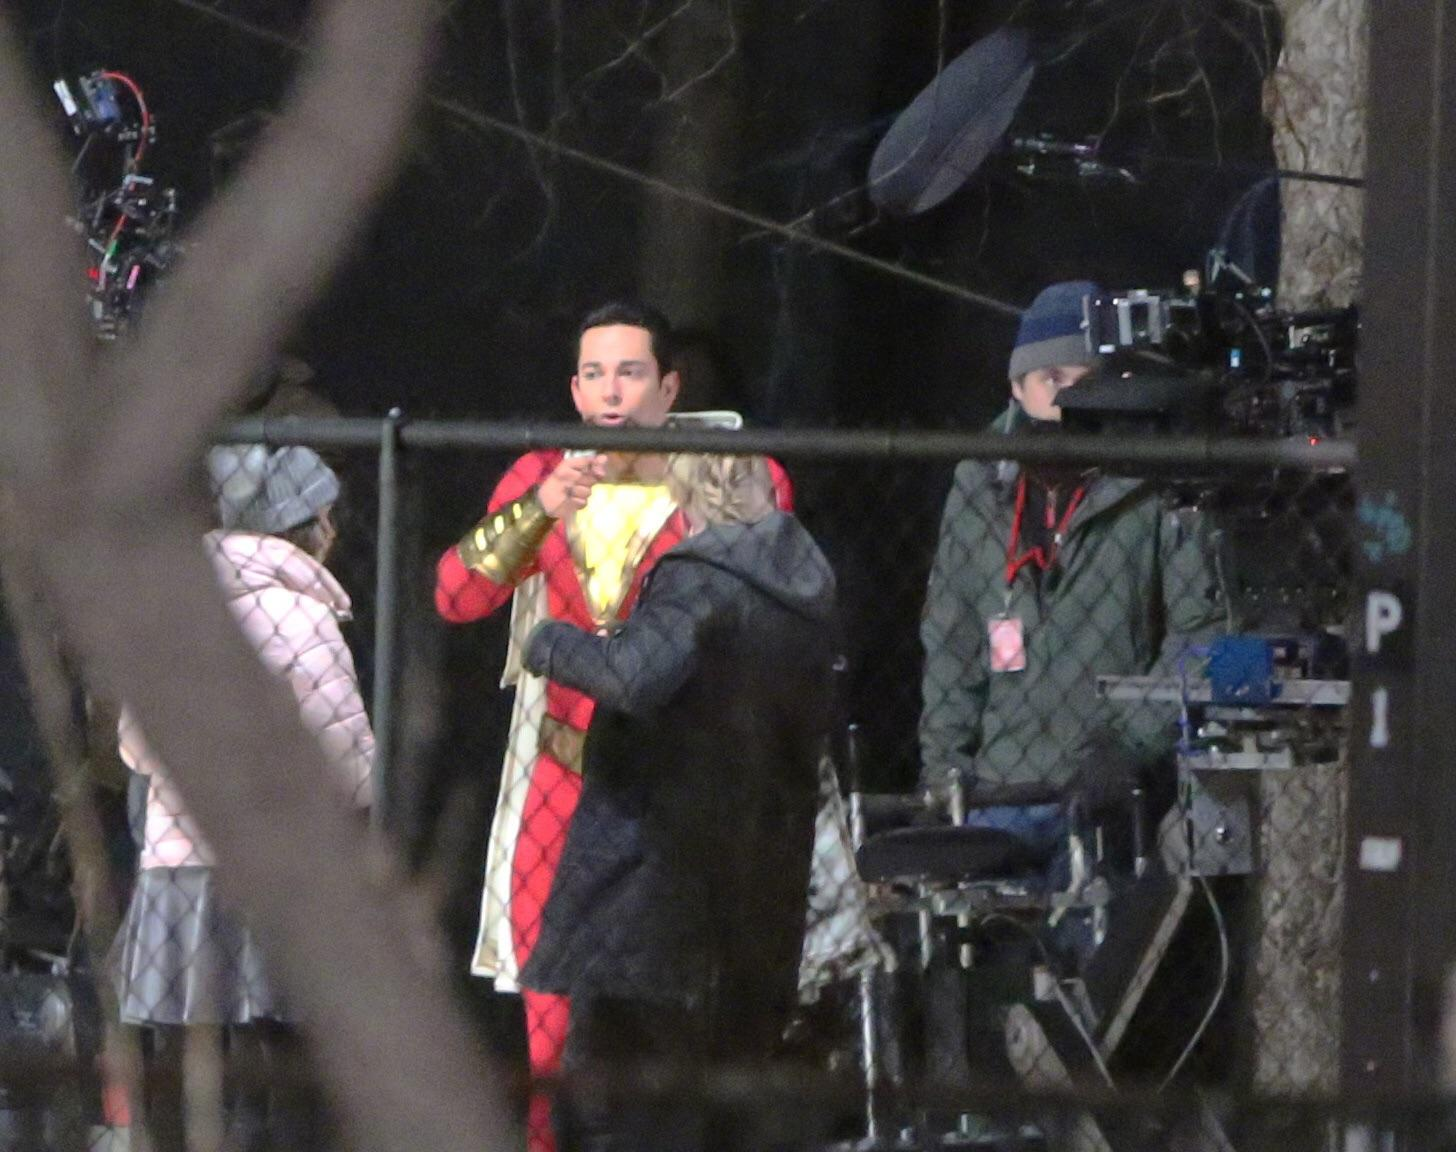 New 'Shazam' set photo reveals the front of Zachary Levi's costume